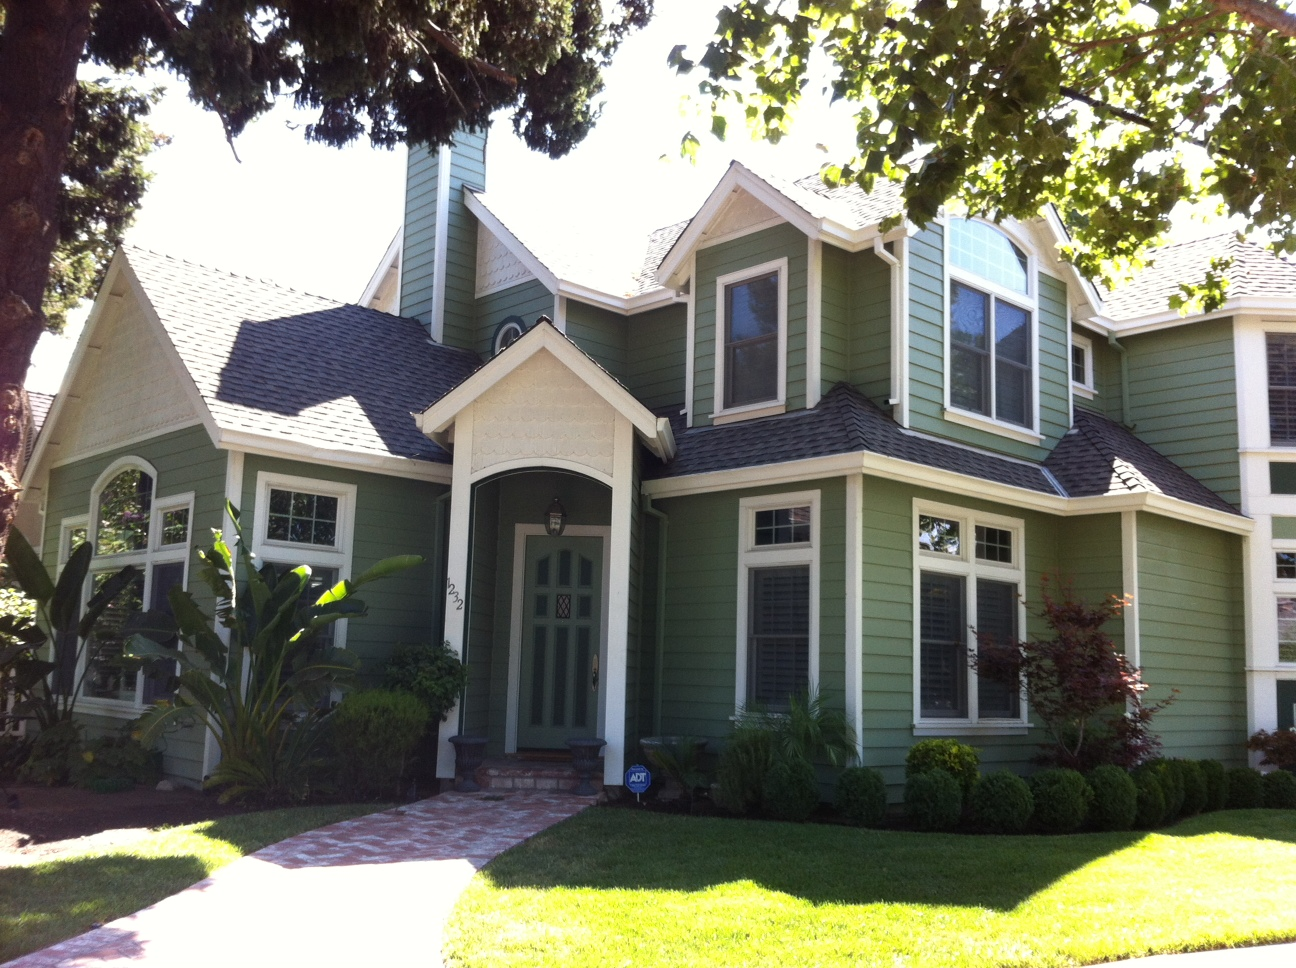 Extreme makeover flowers edition exterior house paint well it 39 s green - Exterior home paint ...